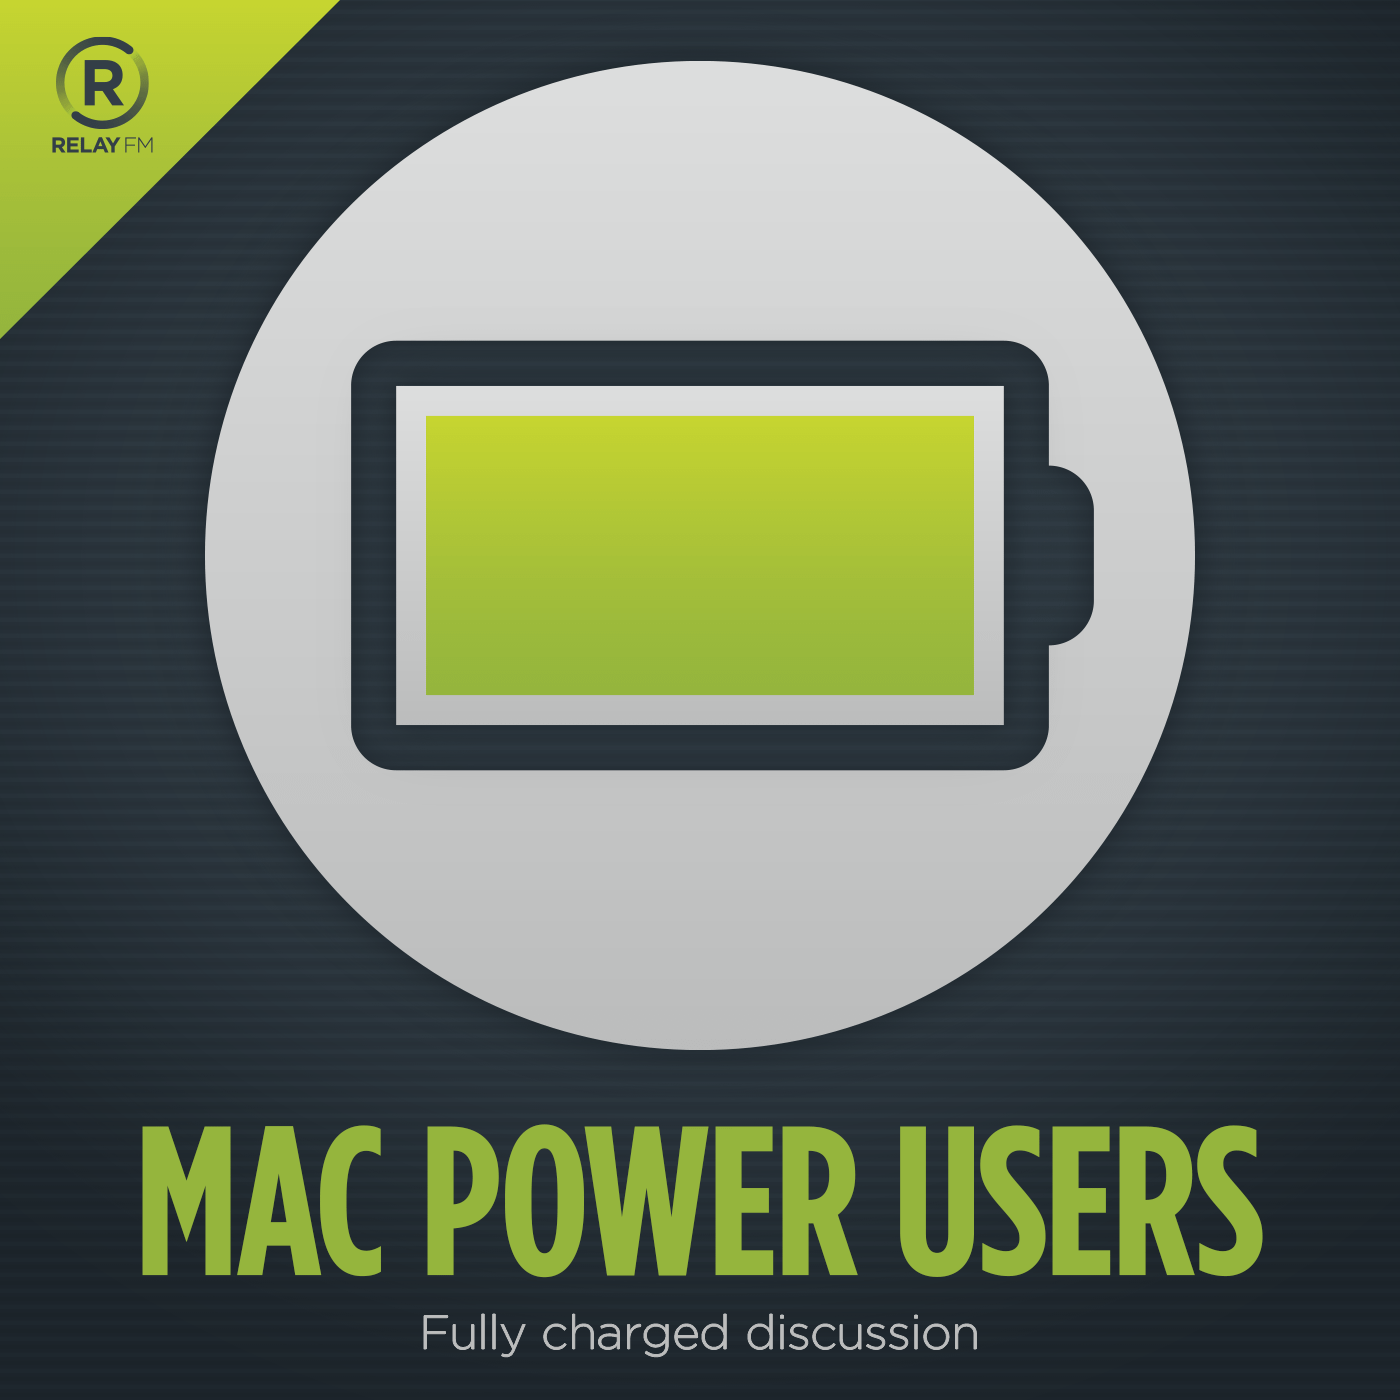 Mac Power Users logo